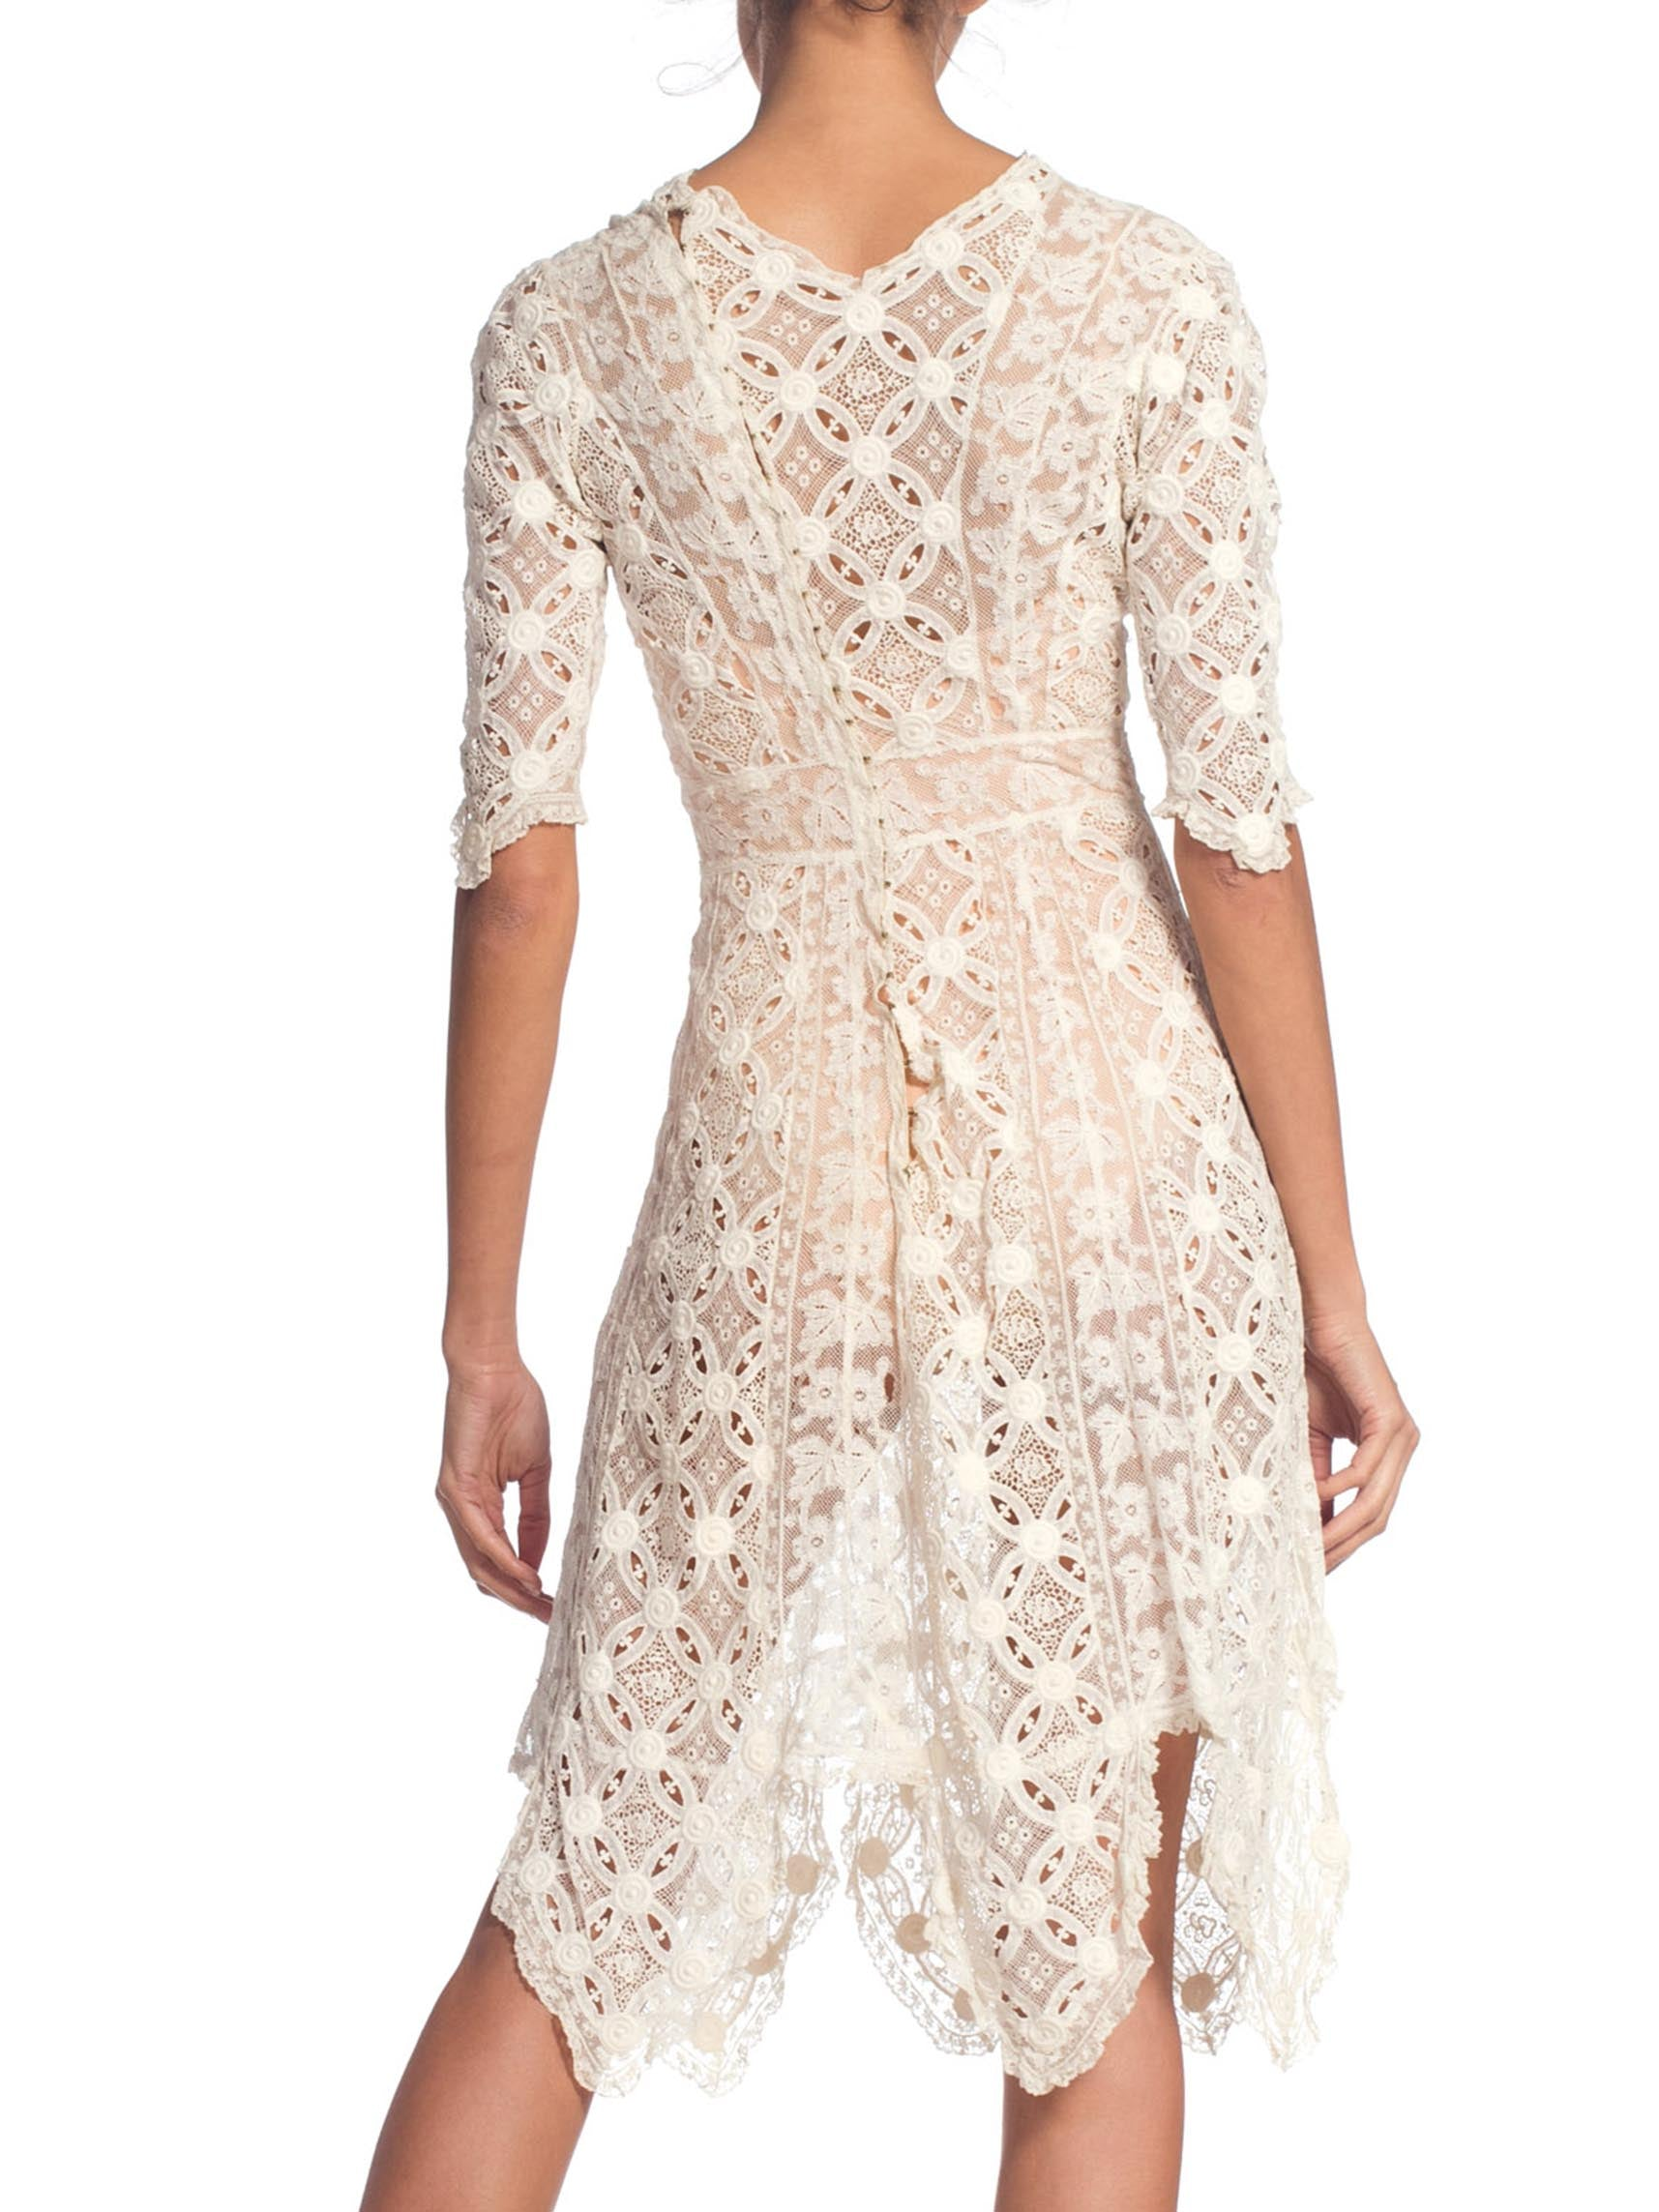 Edwardian White Organic Cotton Dress Artfully Pieced In Numerous Styles Of Lace